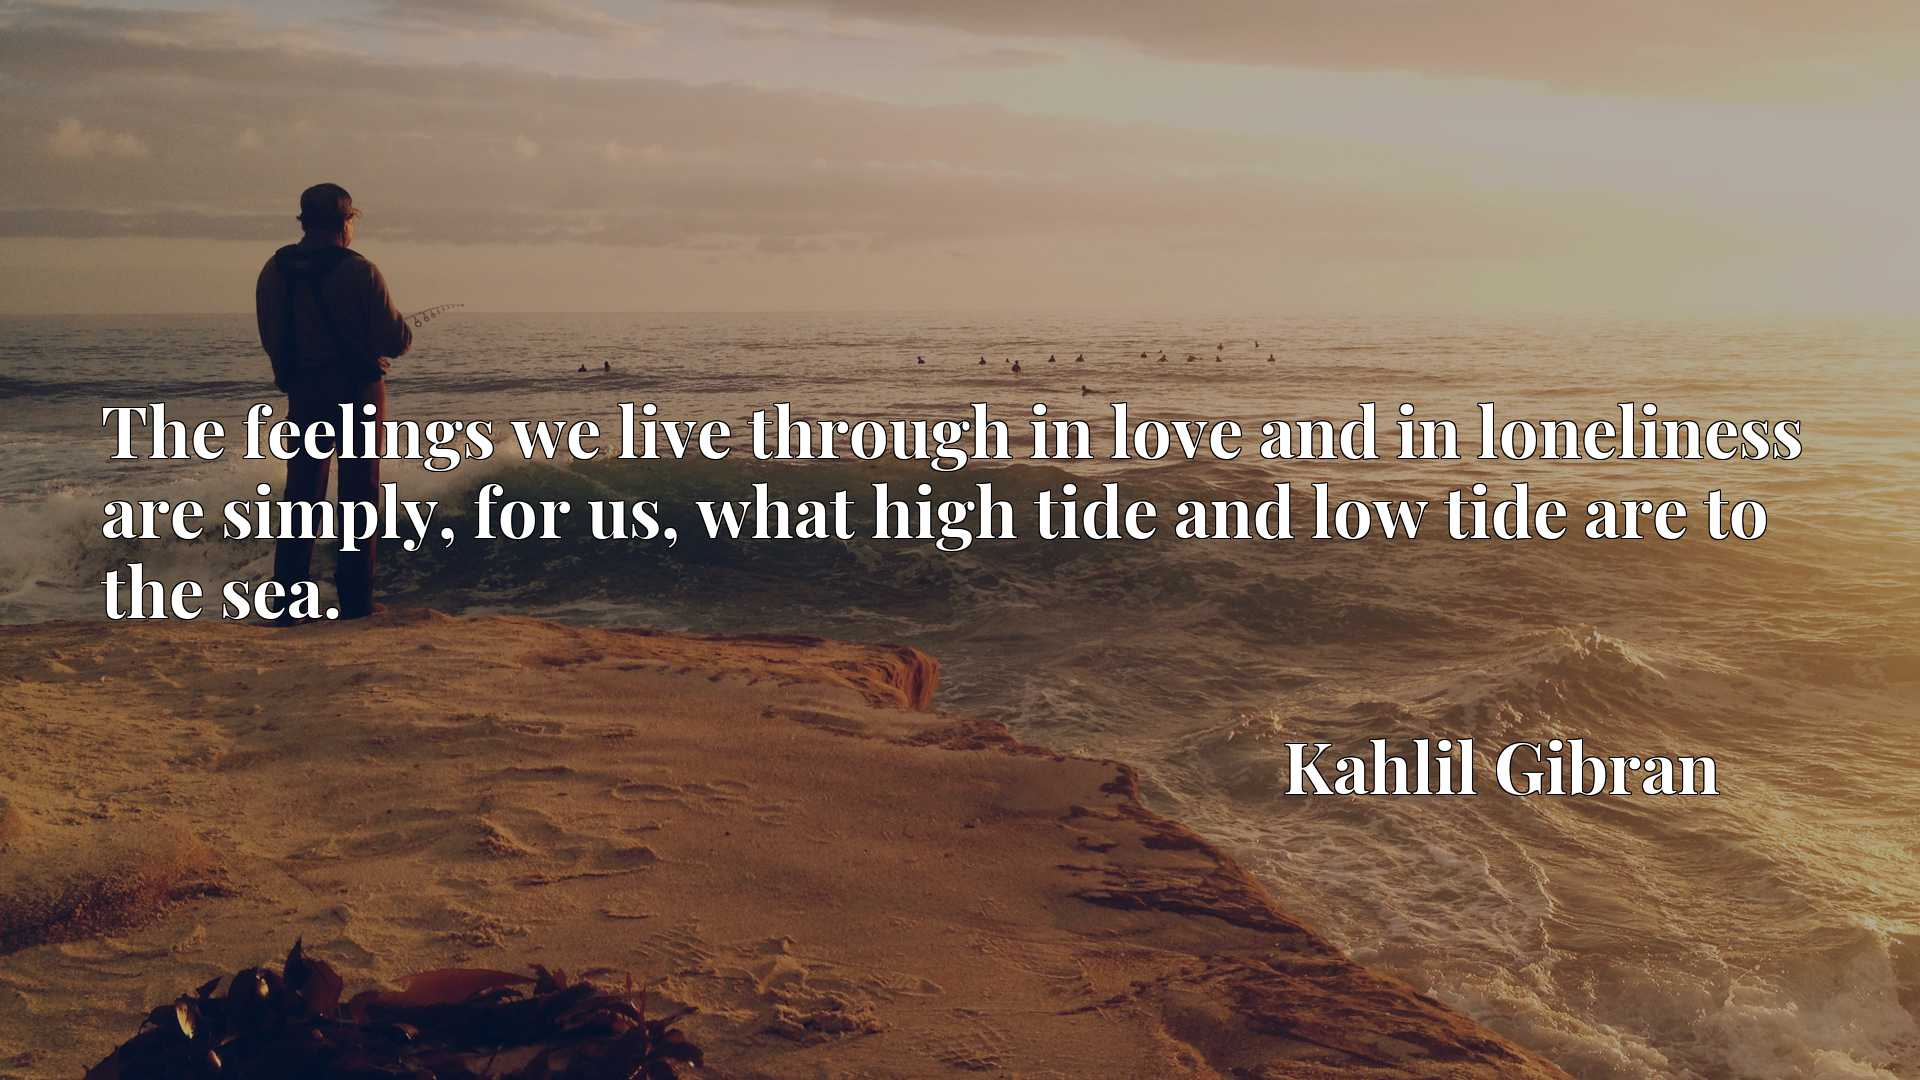 The feelings we live through in love and in loneliness are simply, for us, what high tide and low tide are to the sea.